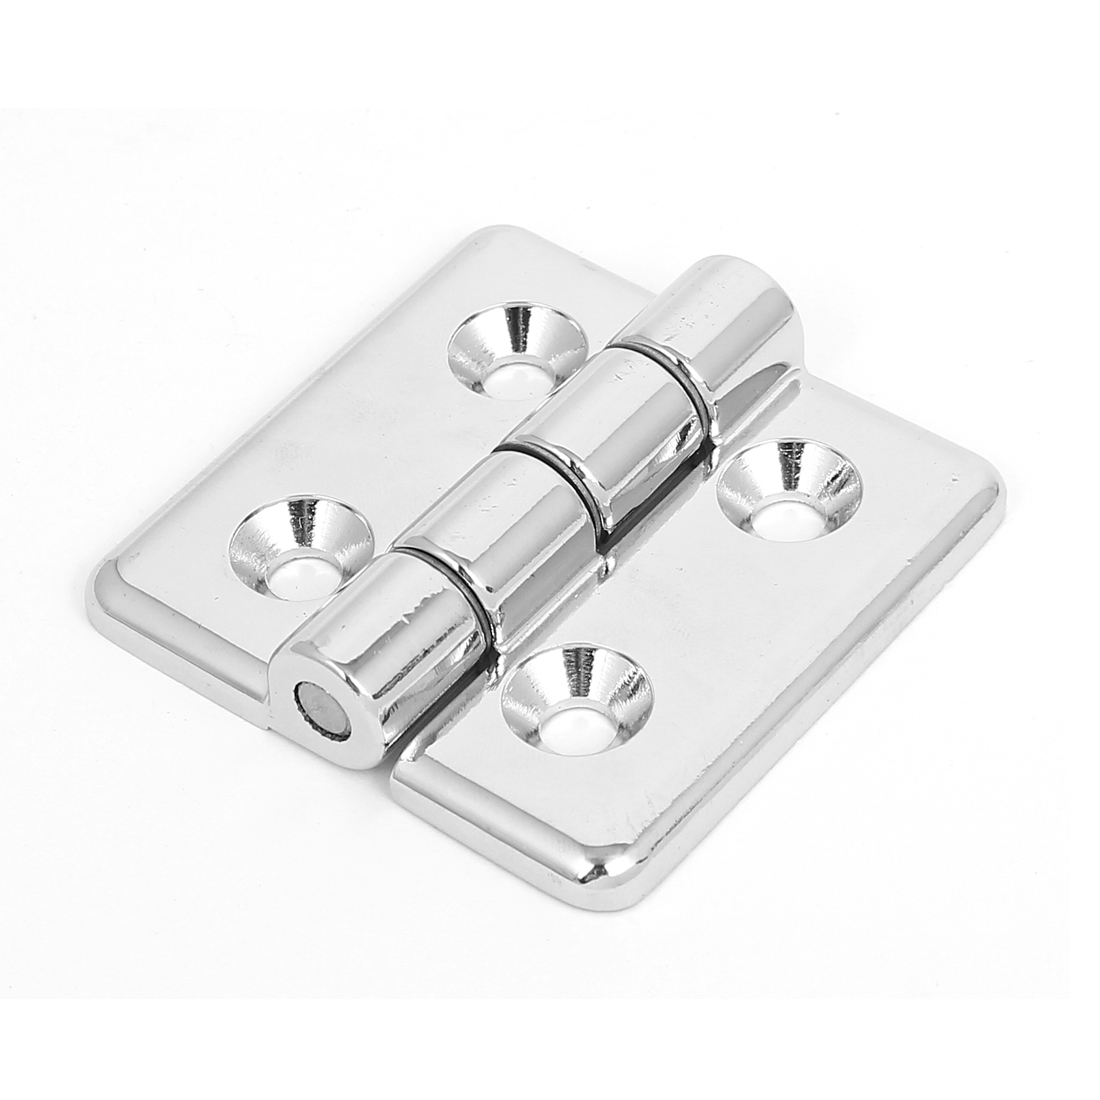 60mm x 60mm 2 Leaves Reinforced Metal Bearing Butt Hinge Silver Tone